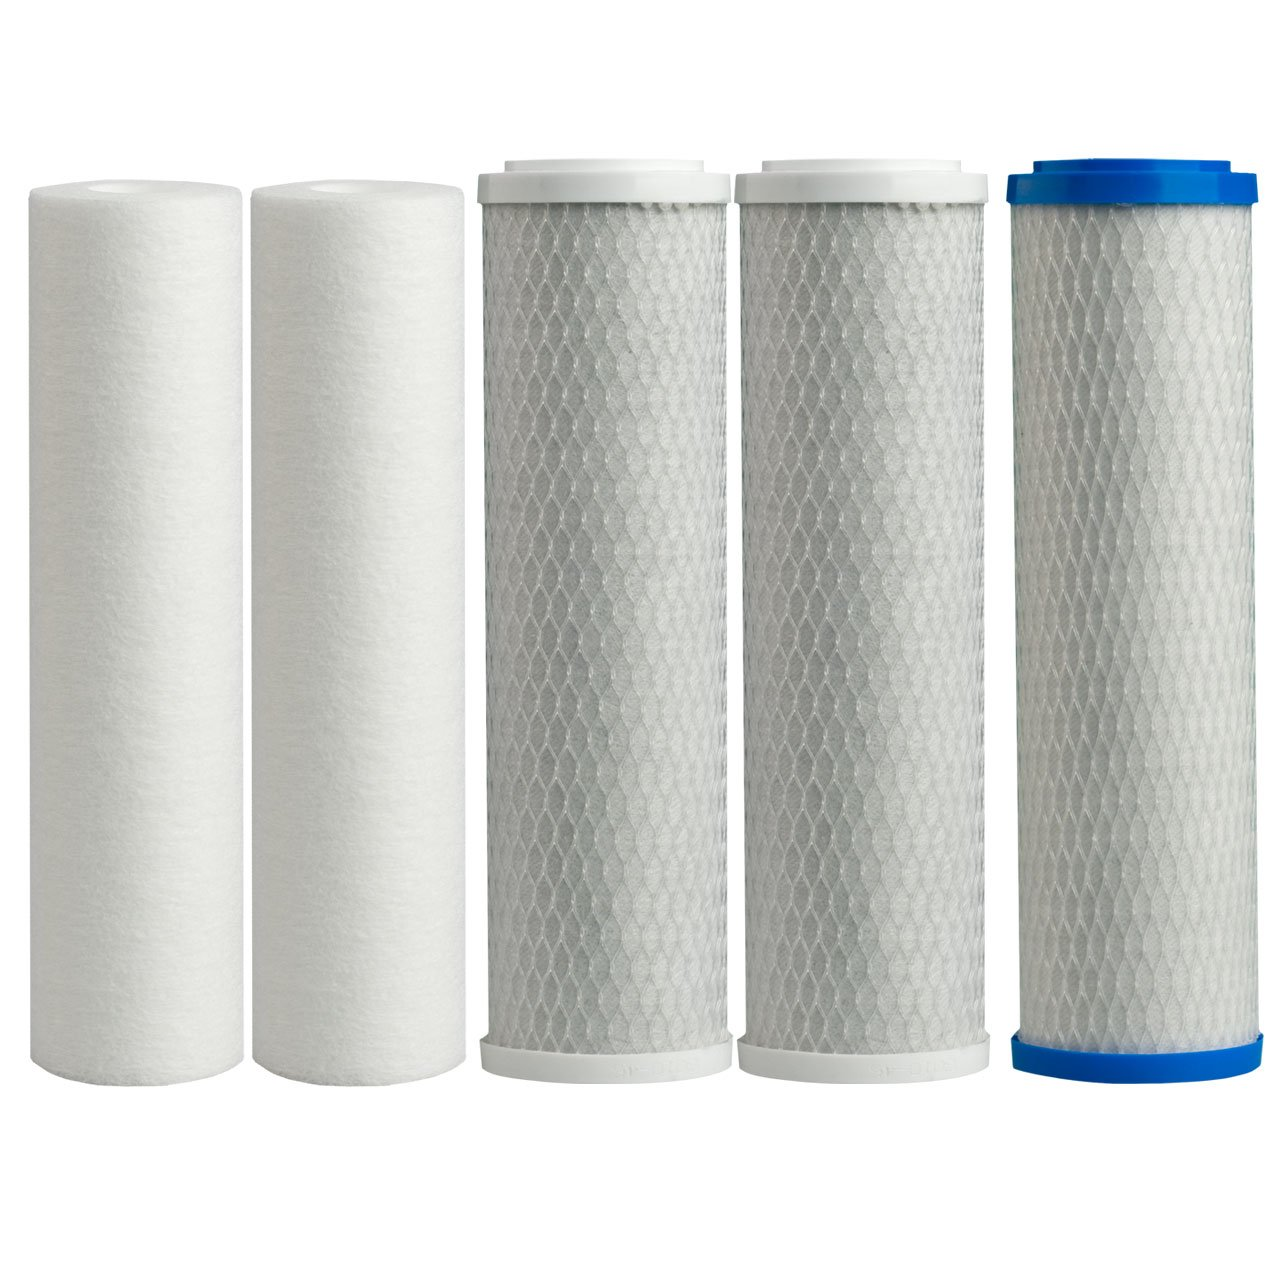 Watts Premier 500124 WP-4V Replacement Filter Pack for Reverse Osmosis System by Watts Premier